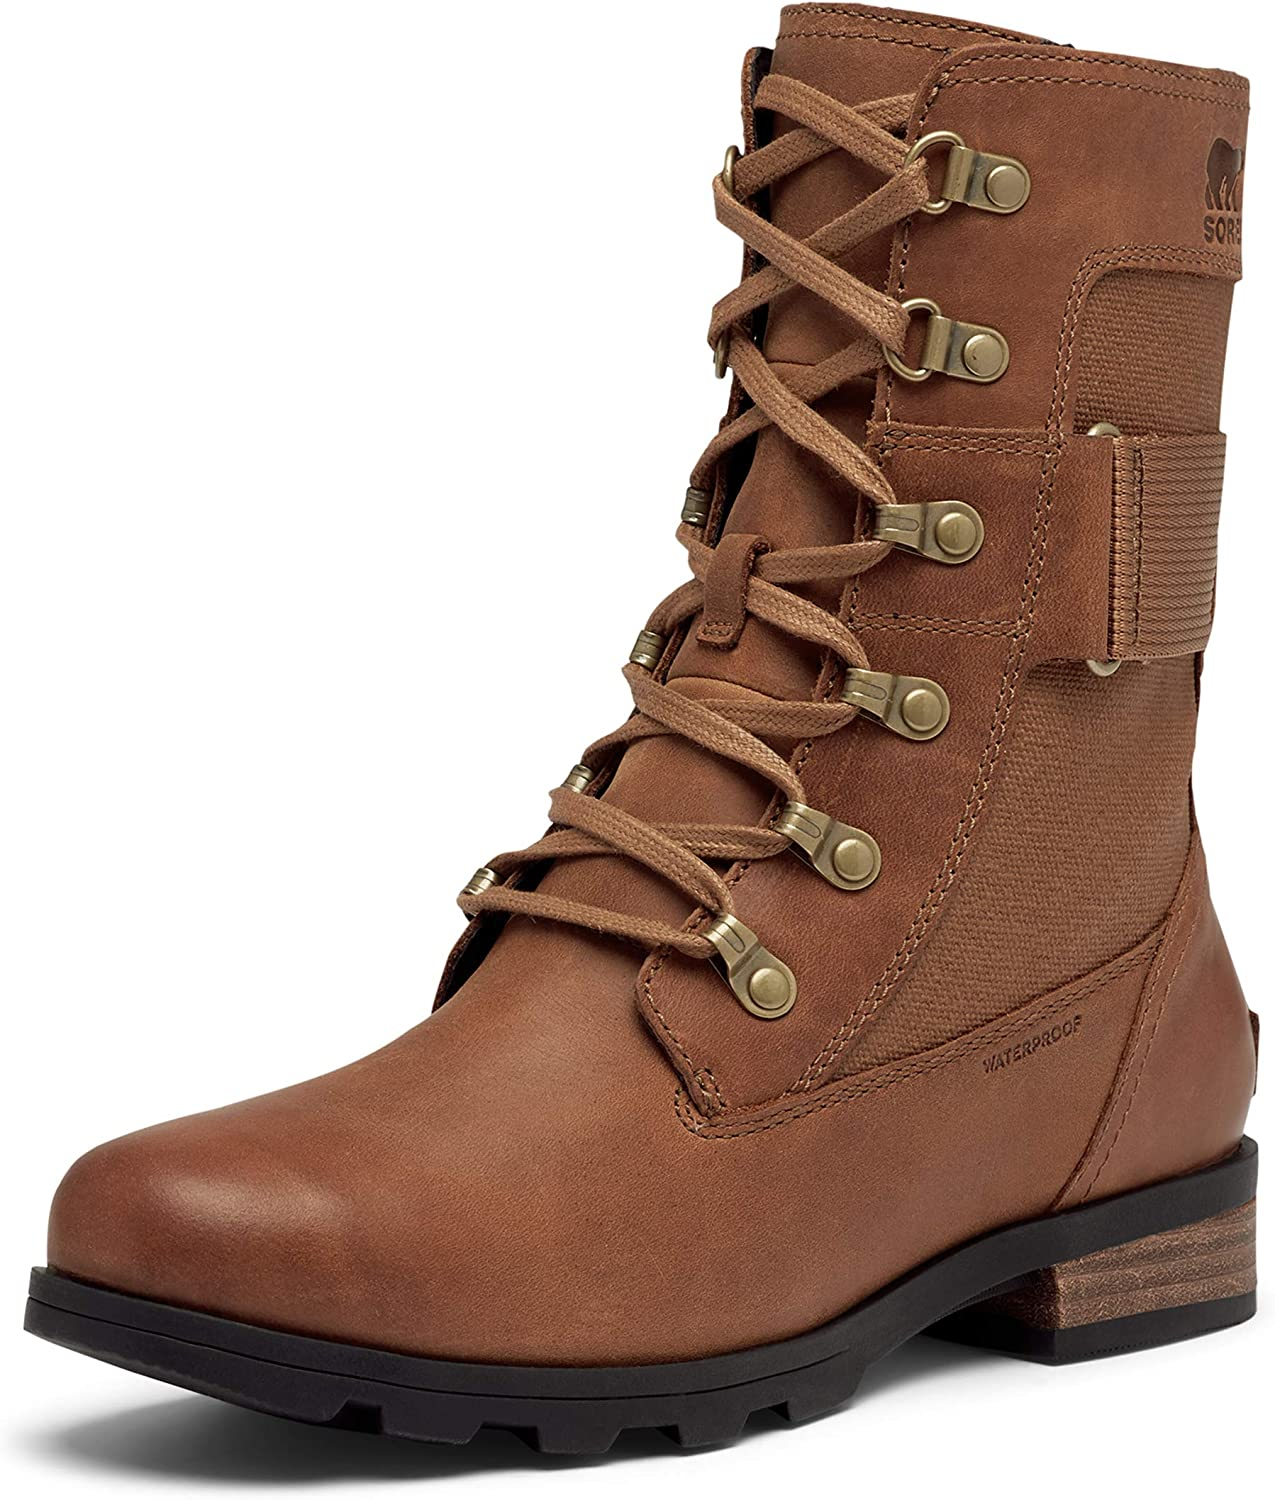 Max 68% OFF Sorel Womens Emelie Conquest Boot 2021new shipping free shipping